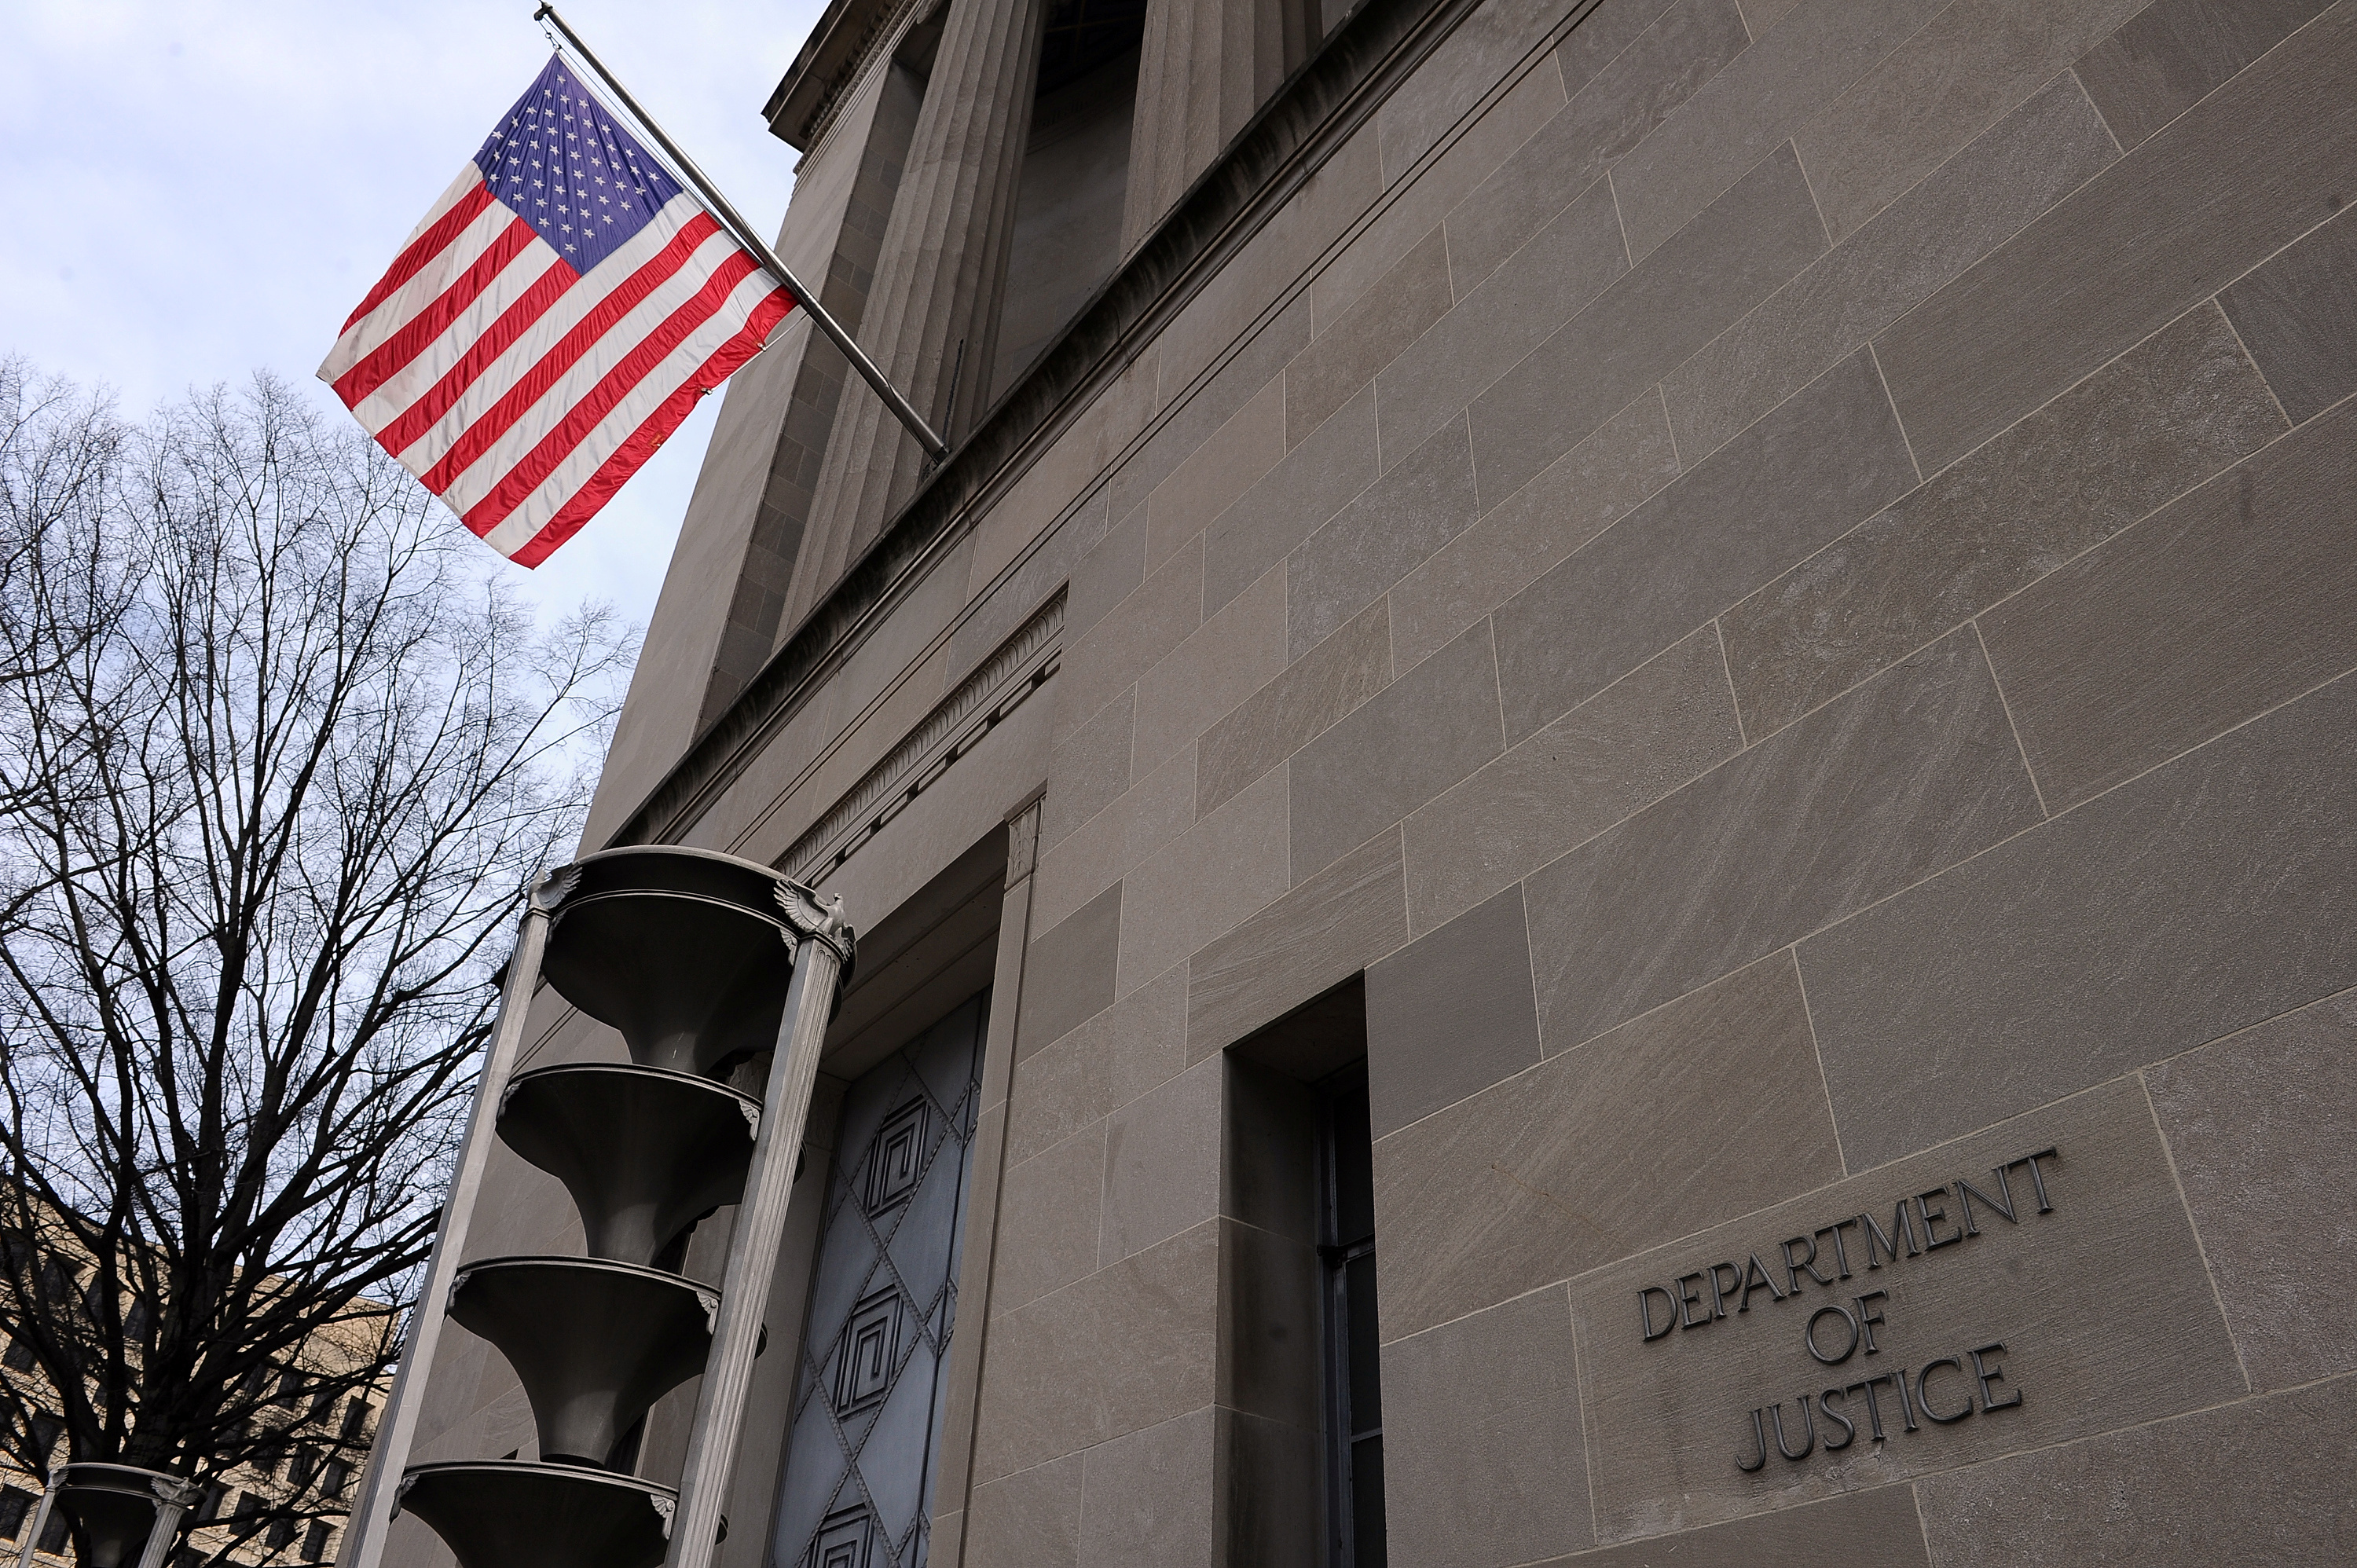 General view of the Robert F. Kennedy Department of Justice Building in Washington, U.S., March 10, 2019. REUTERS/Mary F. Calvert